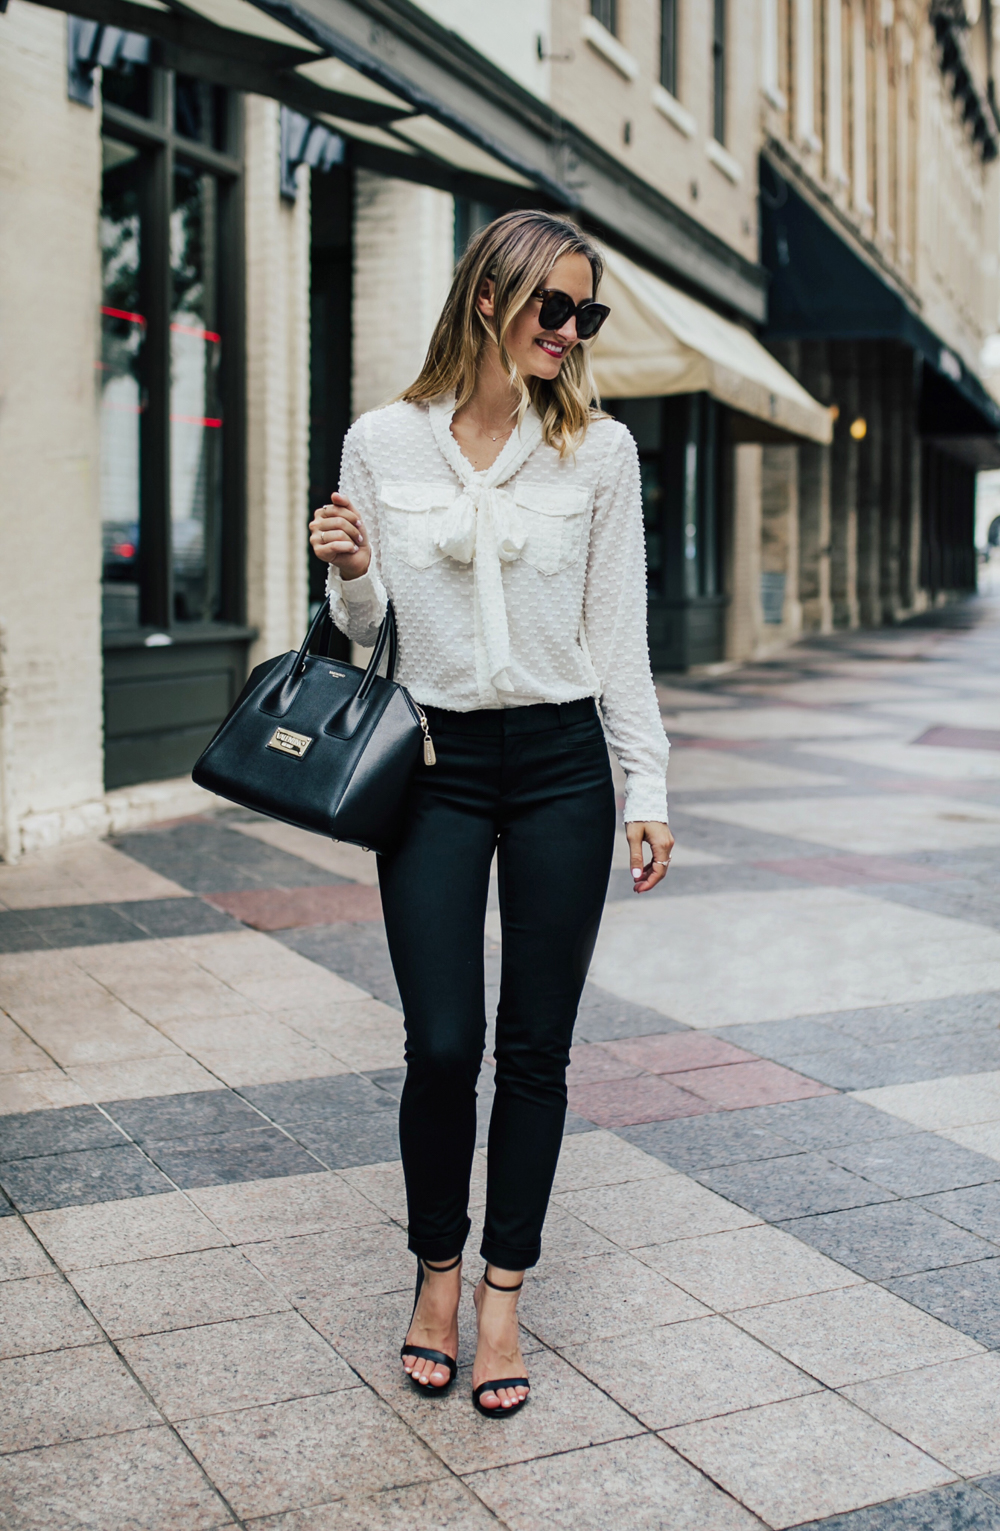 livvyland-blog-olivia-watson-fashion-blogger-banana-republic-sloan-black-dress-pants-pussybow-top-work-wear-outfit-inspiration-classic-chic-5